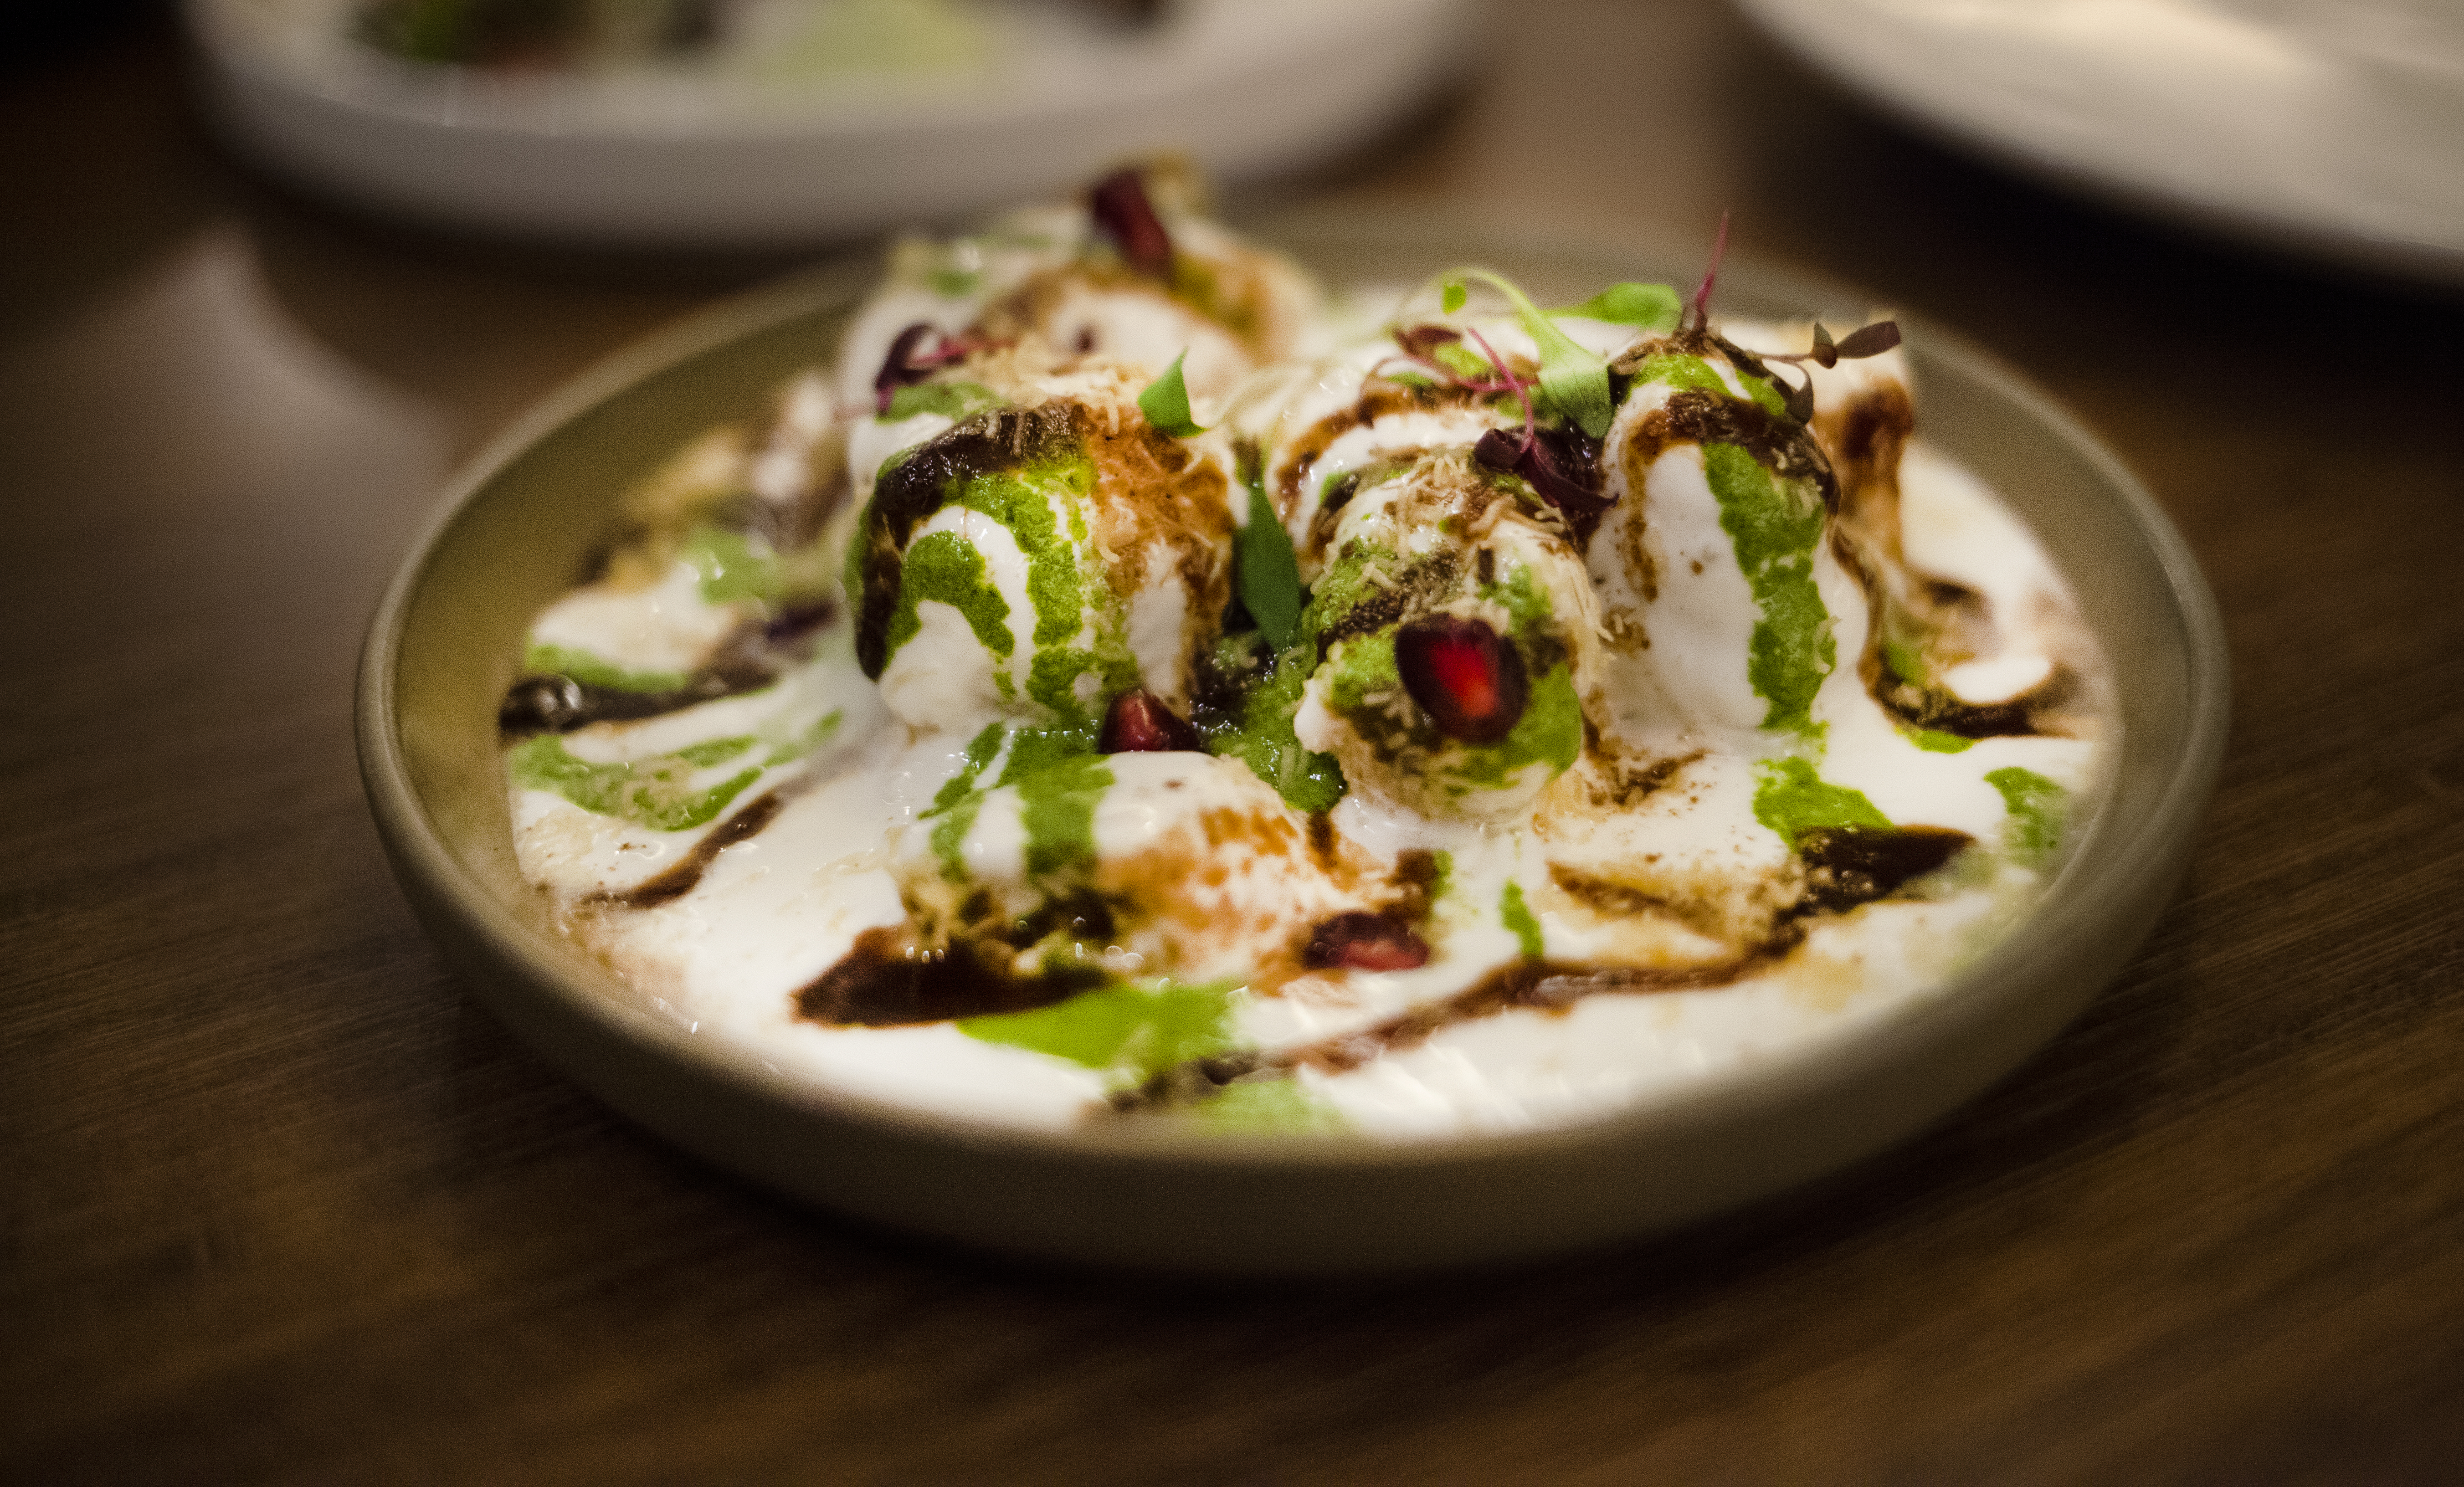 Fine Dining Indian Restaurant Kahani Hits the Spot in Chelsea: Spiced Chickpea with Sweetened Yoghurt